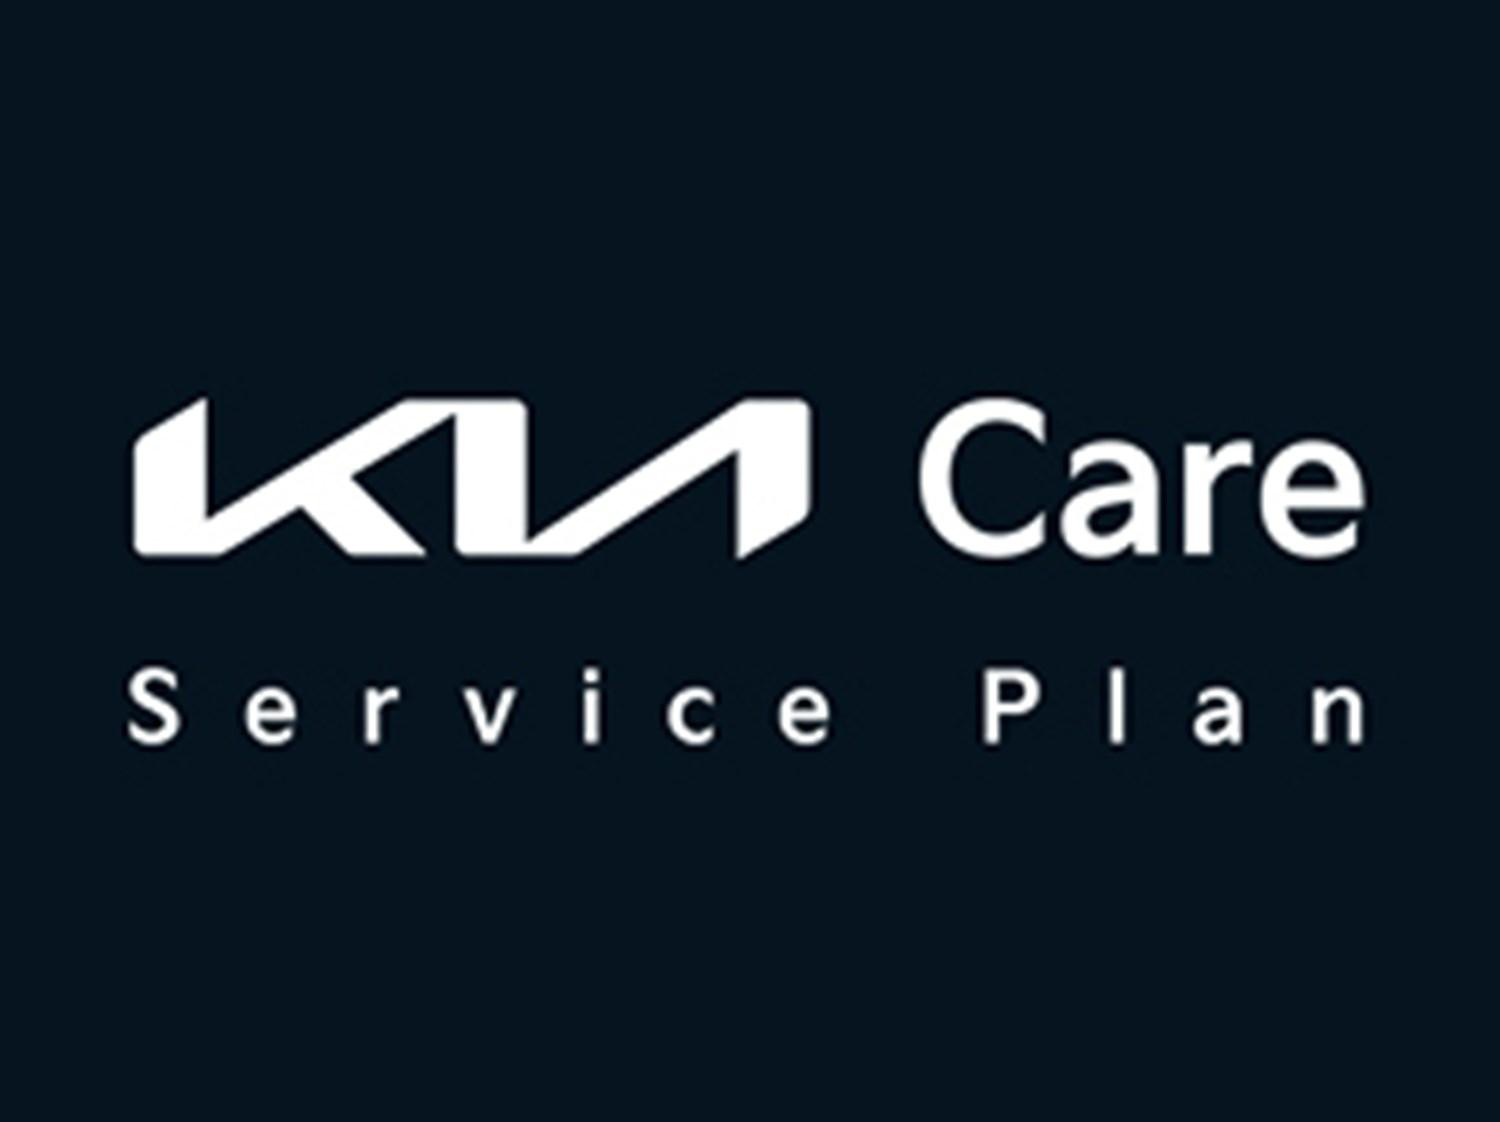 Kia Care Service Plan new Kia branding Jan 2021